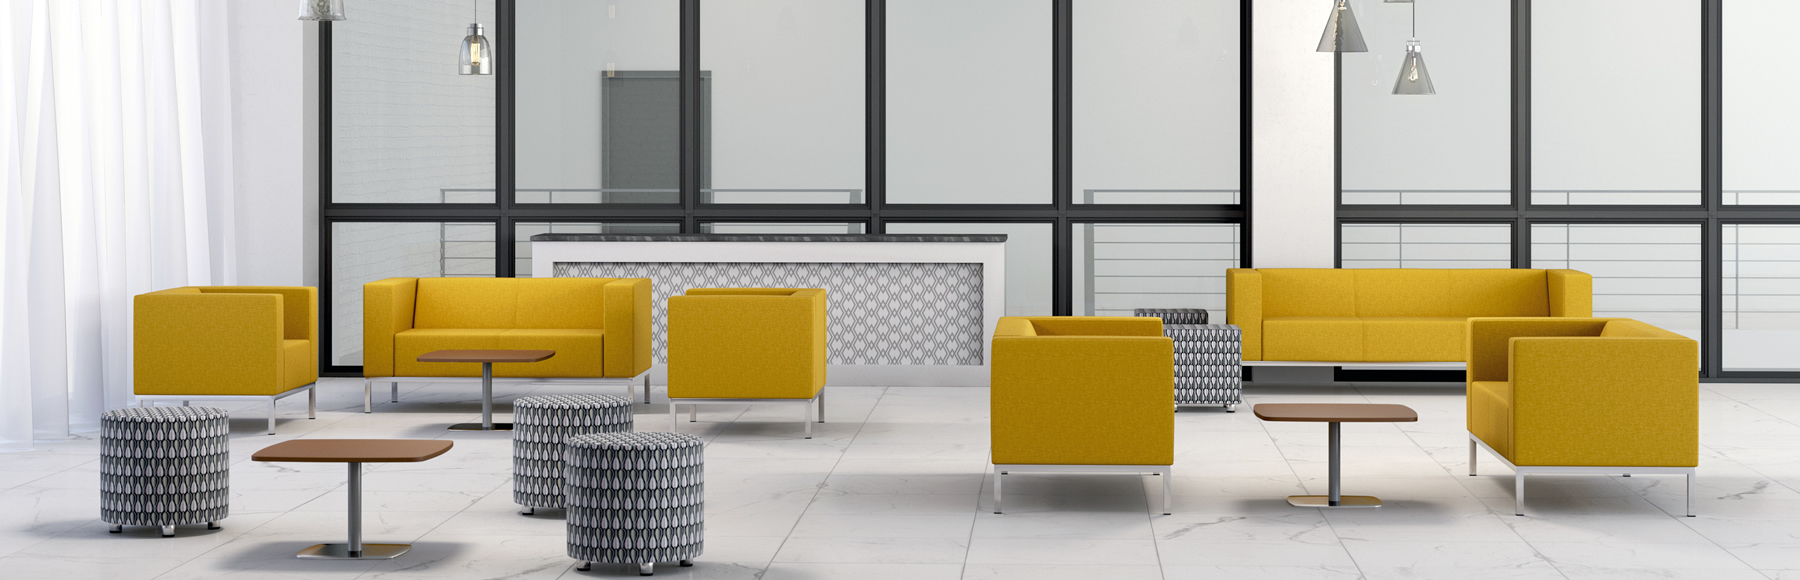 Box Reception & Breakout Seating